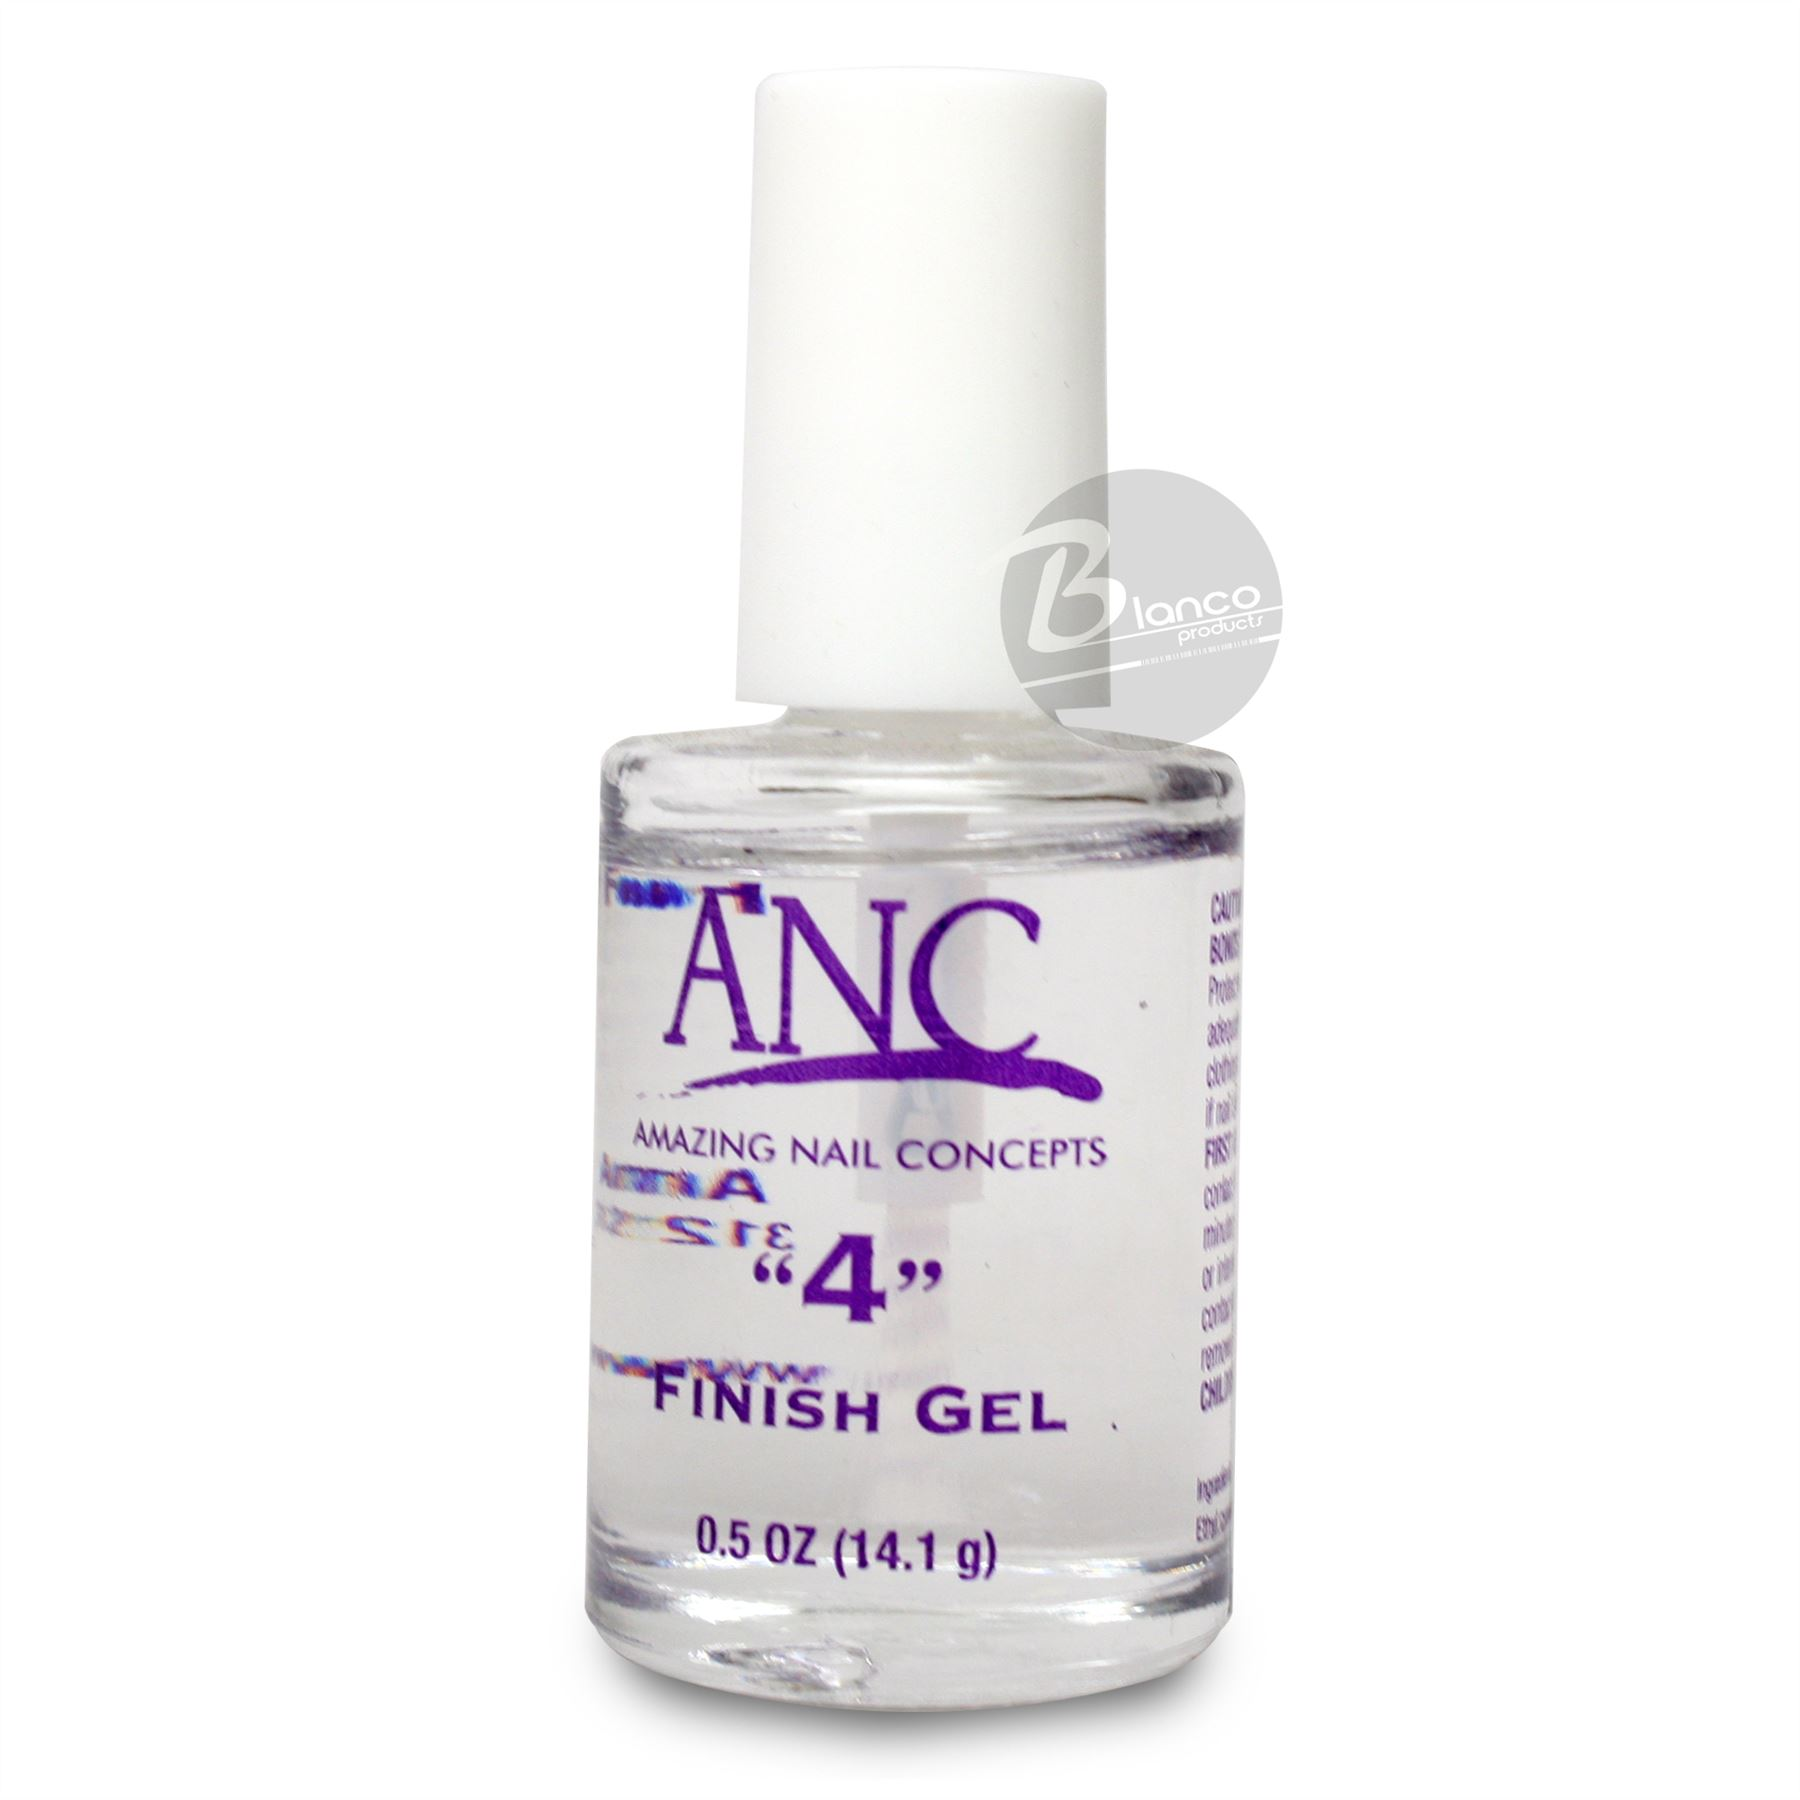 "Nail Dipping System: Amazing Nail Concepts Finish Gel DIP Powder System Step ""4"